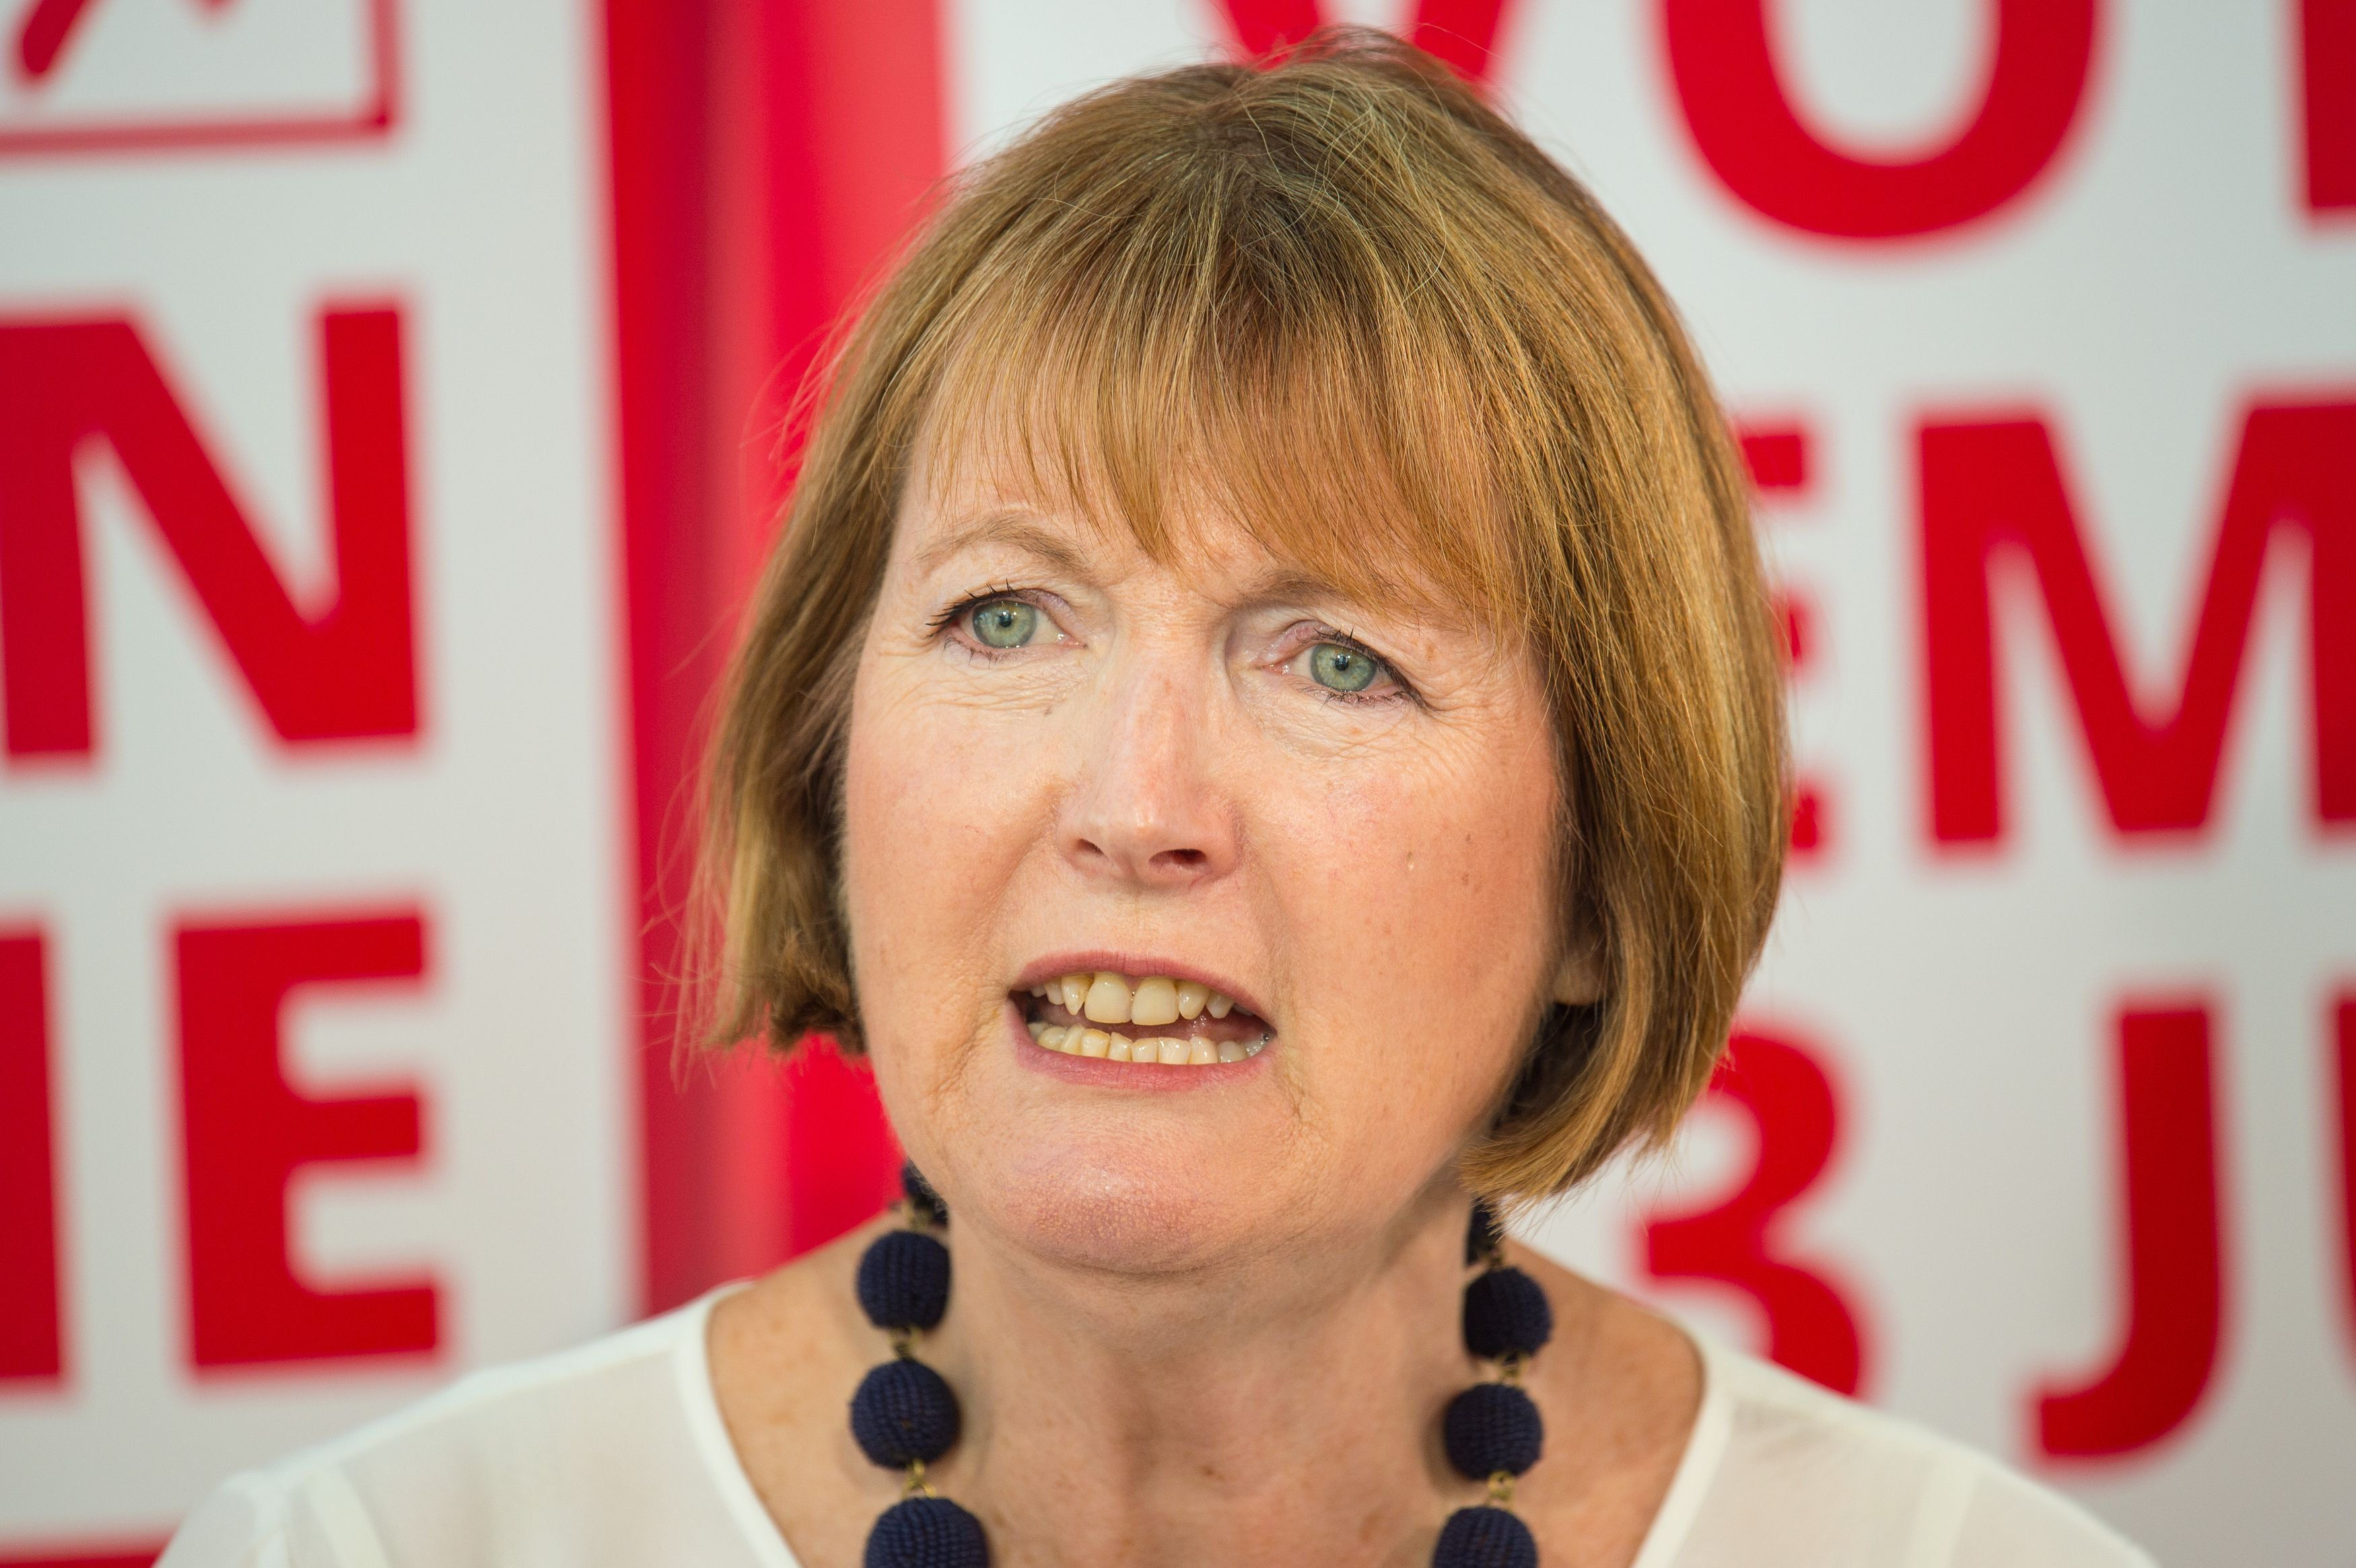 Harriet Harman: If I'd Run For Labour Leader in 2010, I Would Have